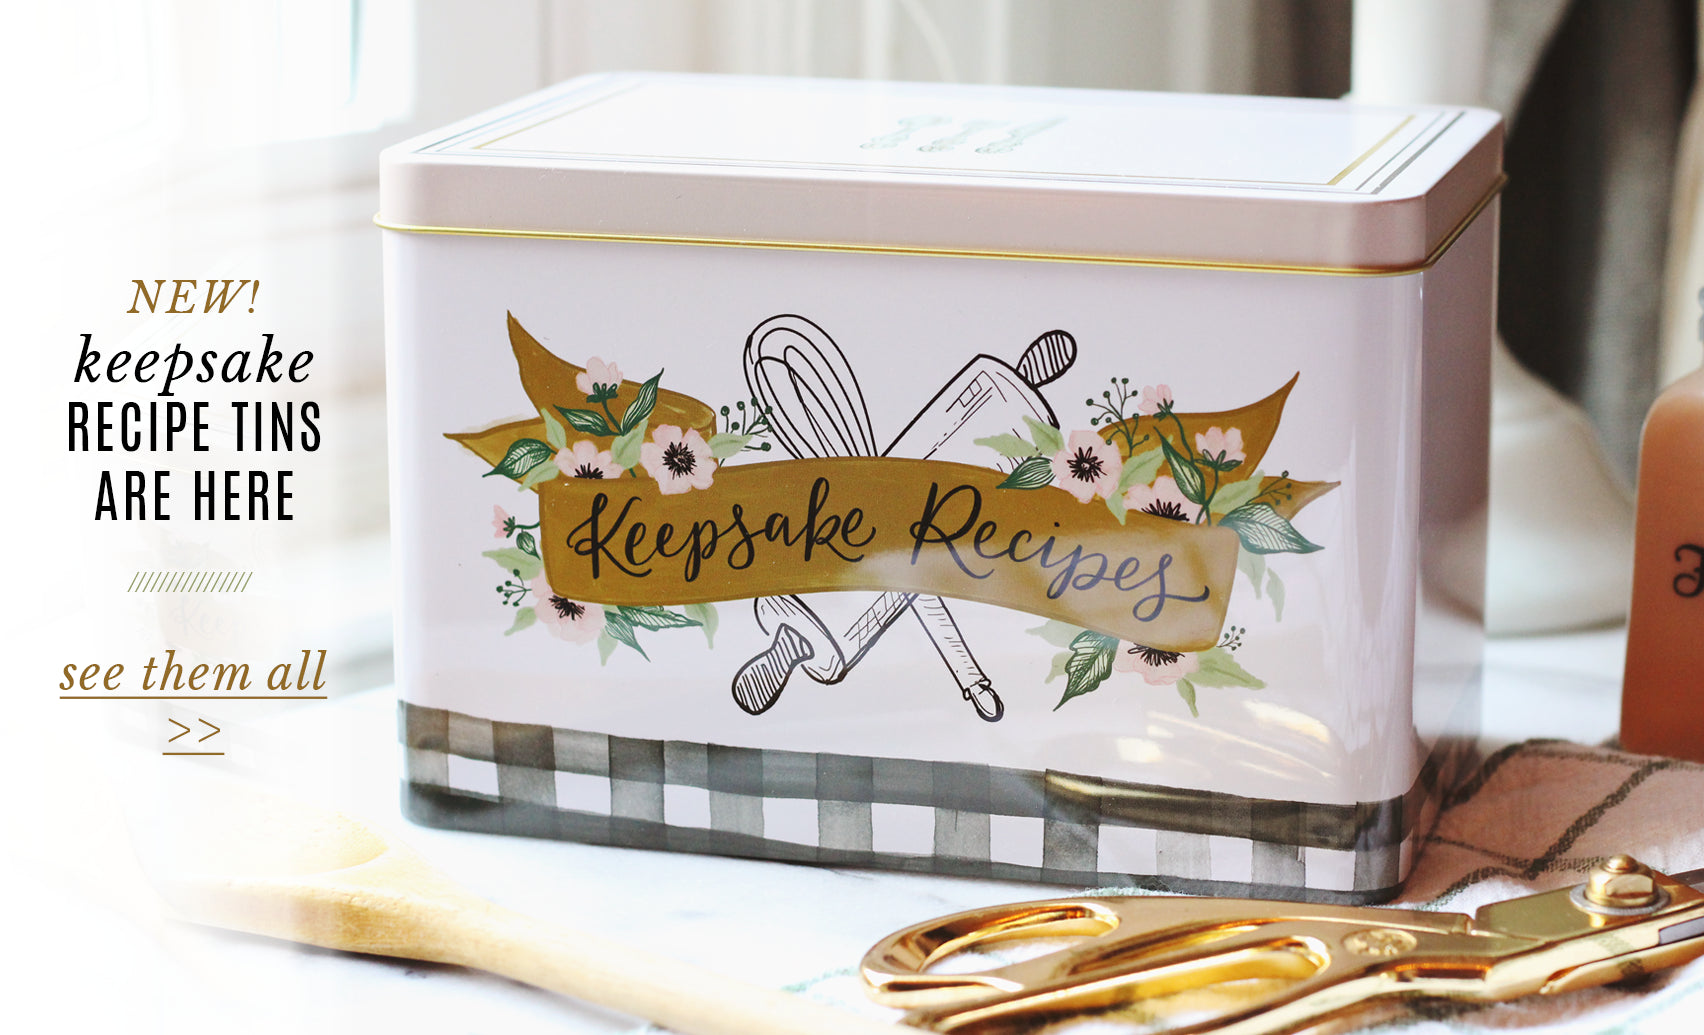 New! Recipe Tins are here.